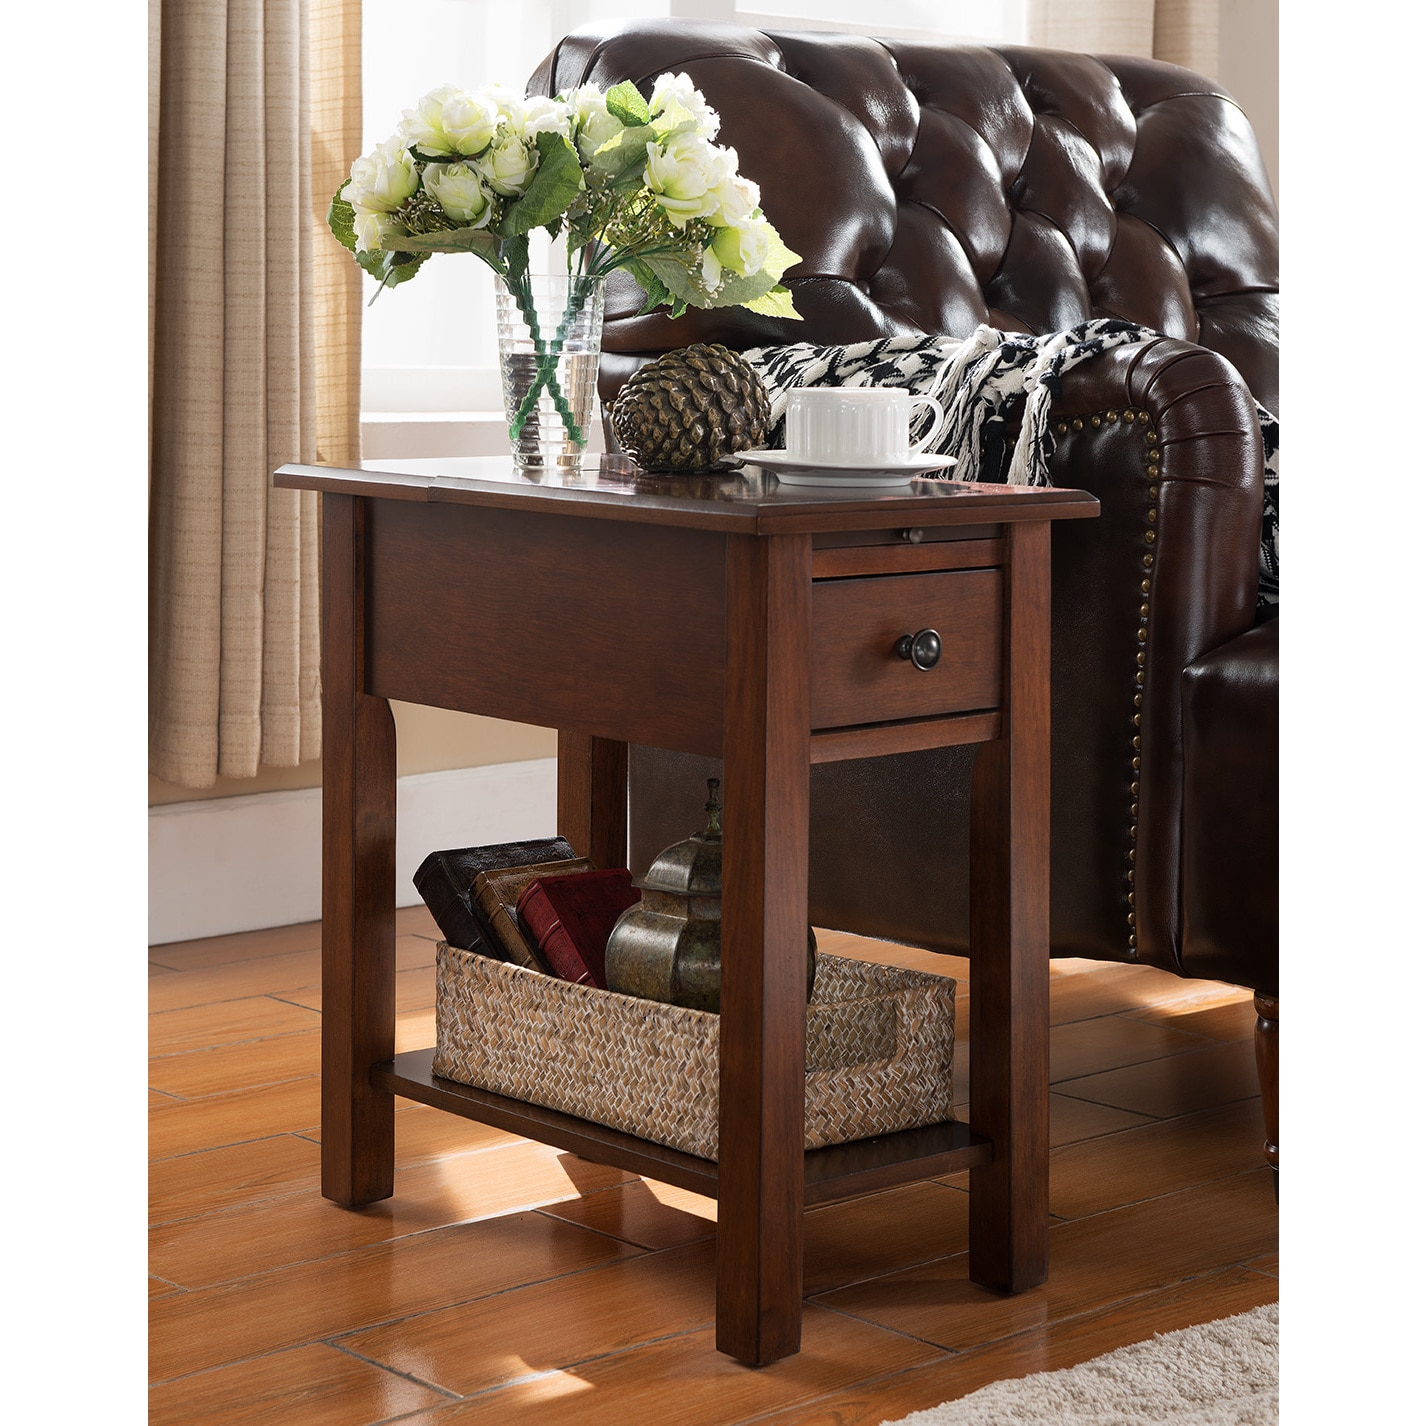 Sutton Side Table With Charging Station In Espresso Free Shipping Today 19206674